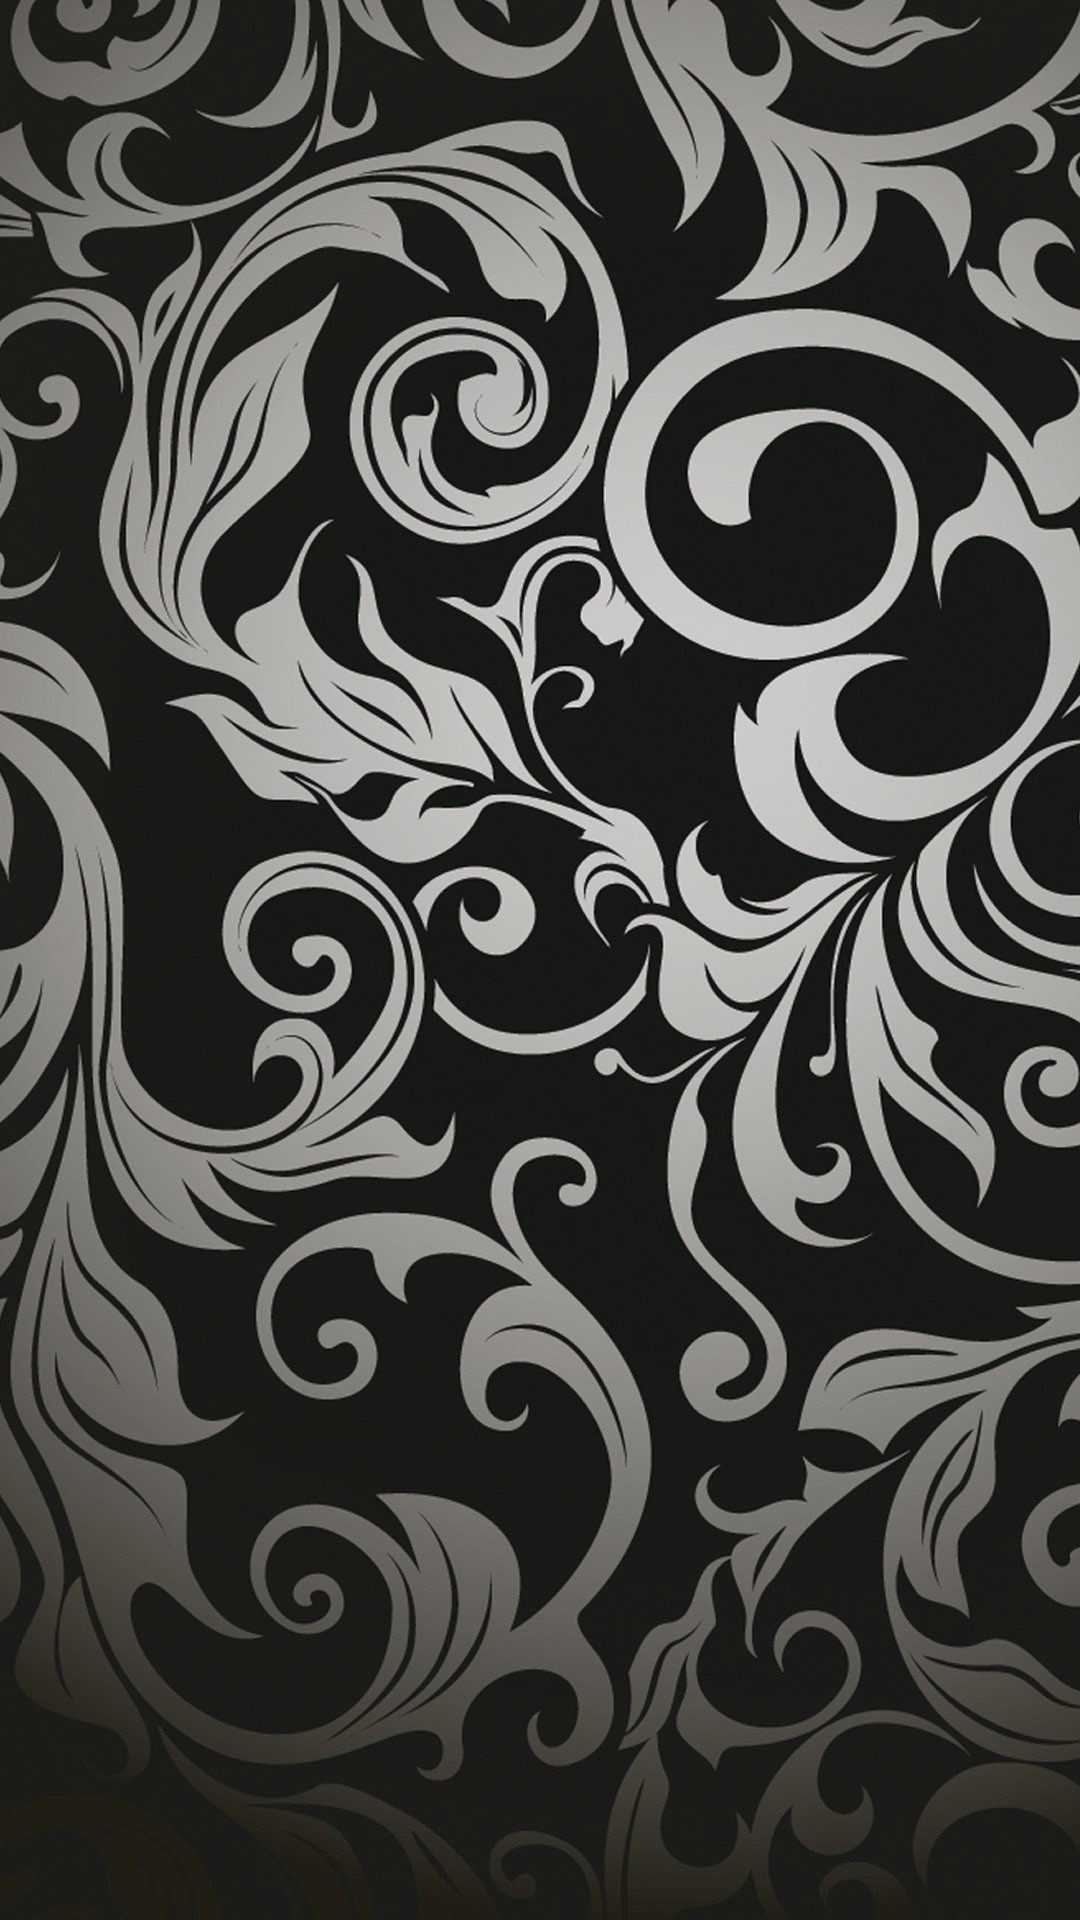 Black And White Abstract Wallpaper ①